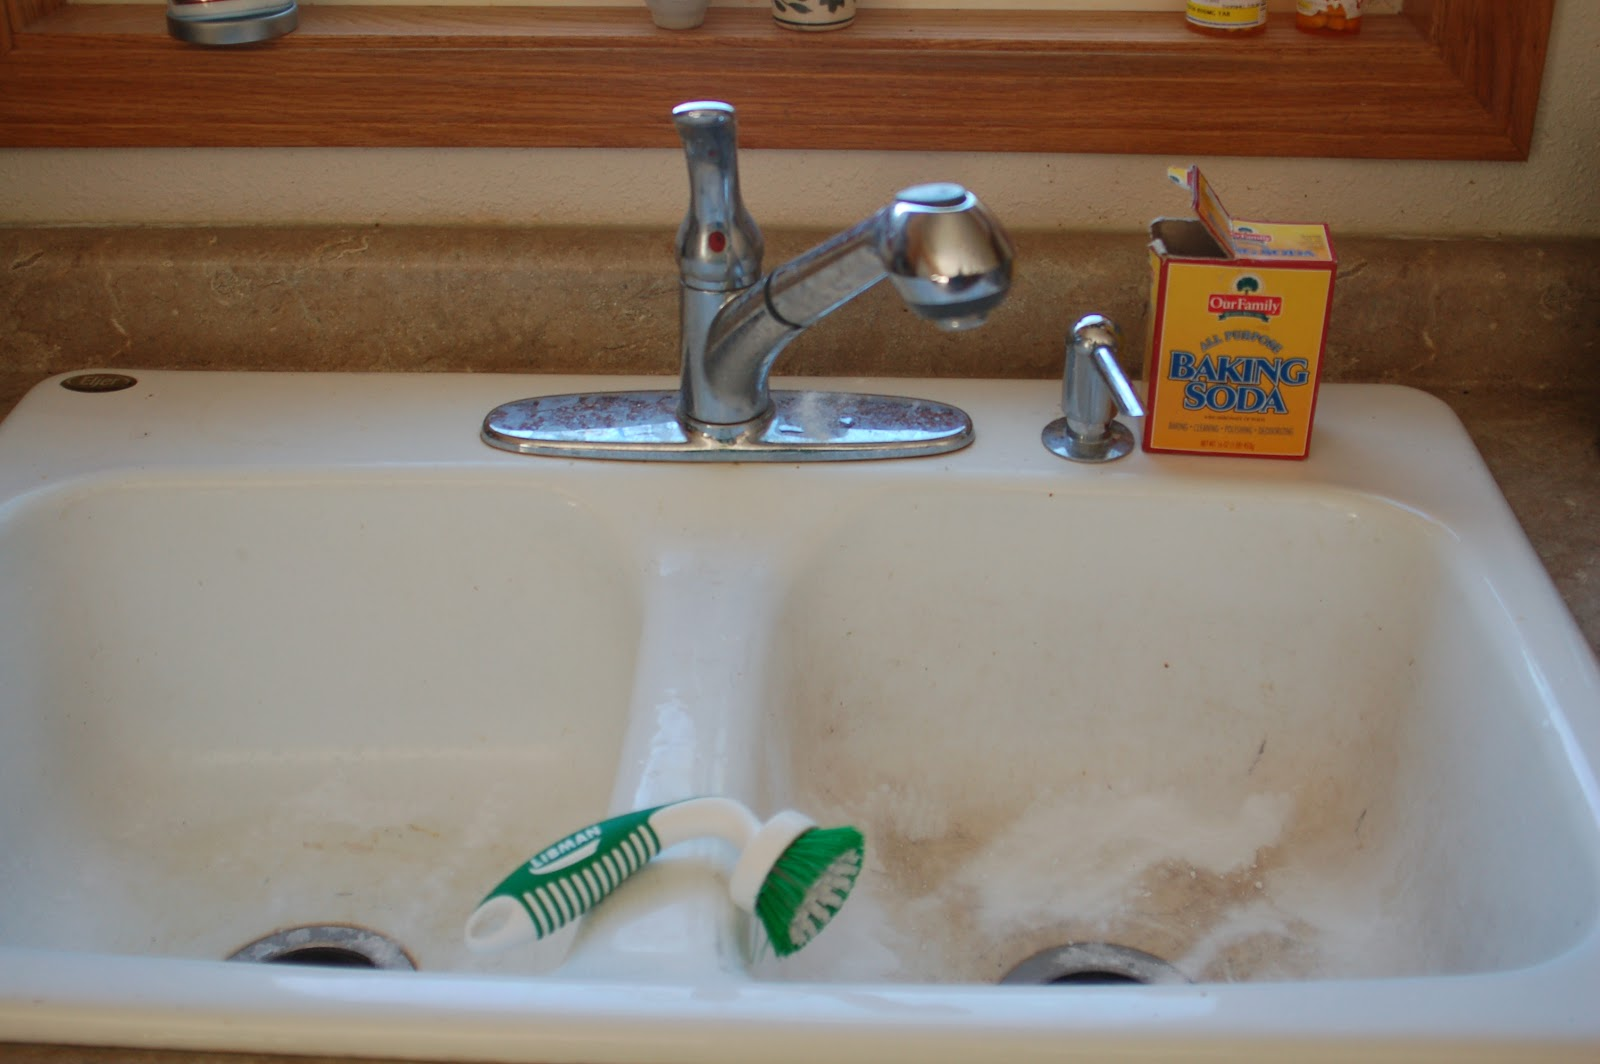 How To Clean Porcelain Sinks Without Bleach